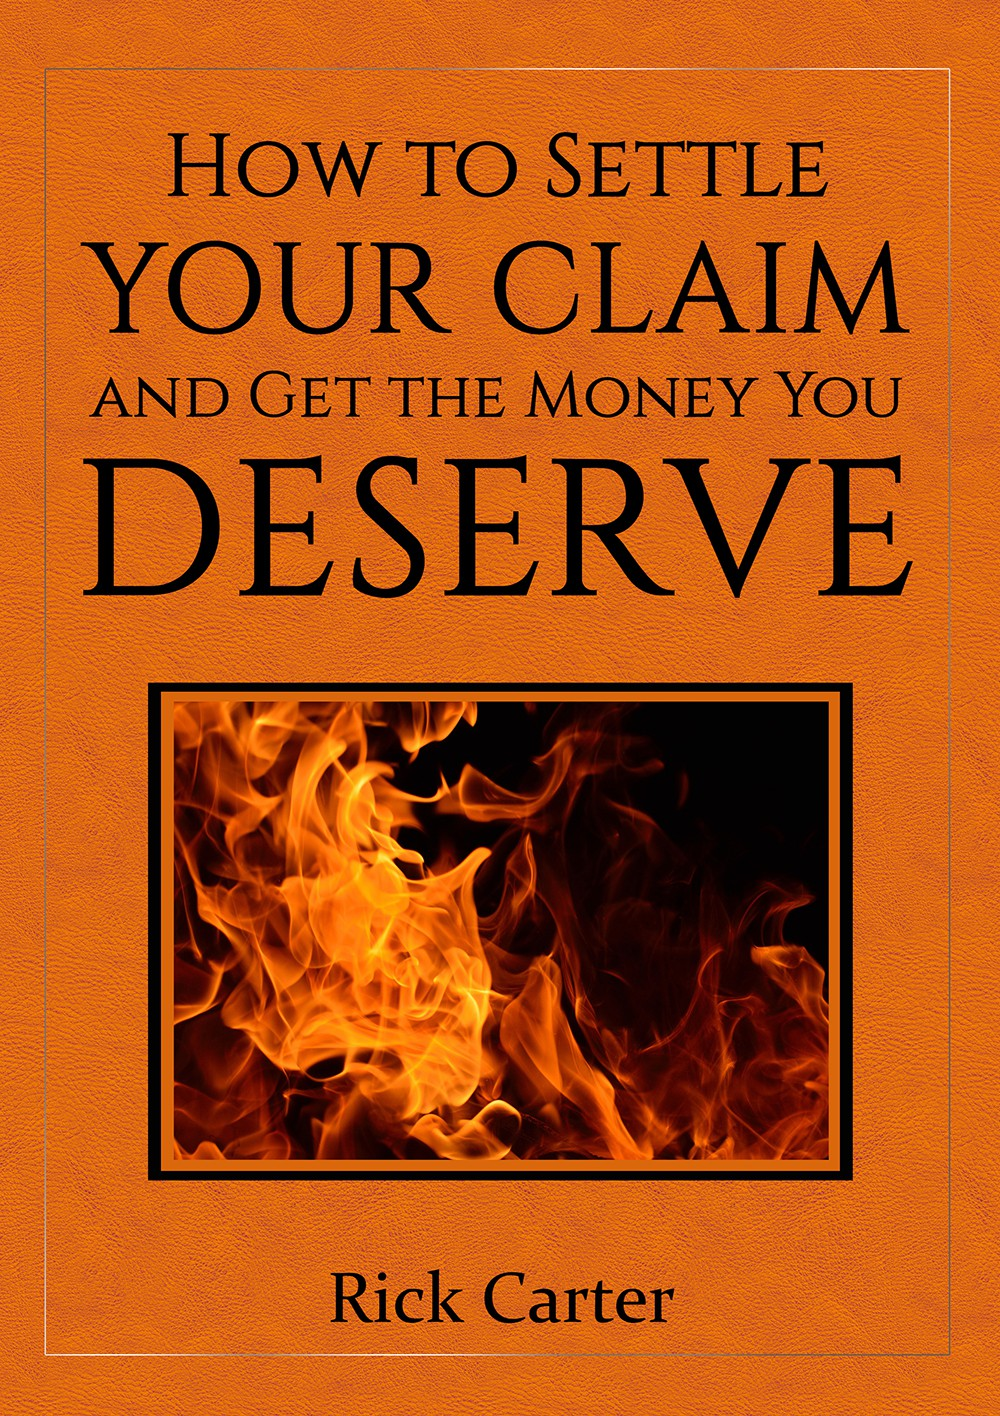 Be a HERO to people and families in need. .  Book: How to Settle Your Claim and Get the Money You Deserve